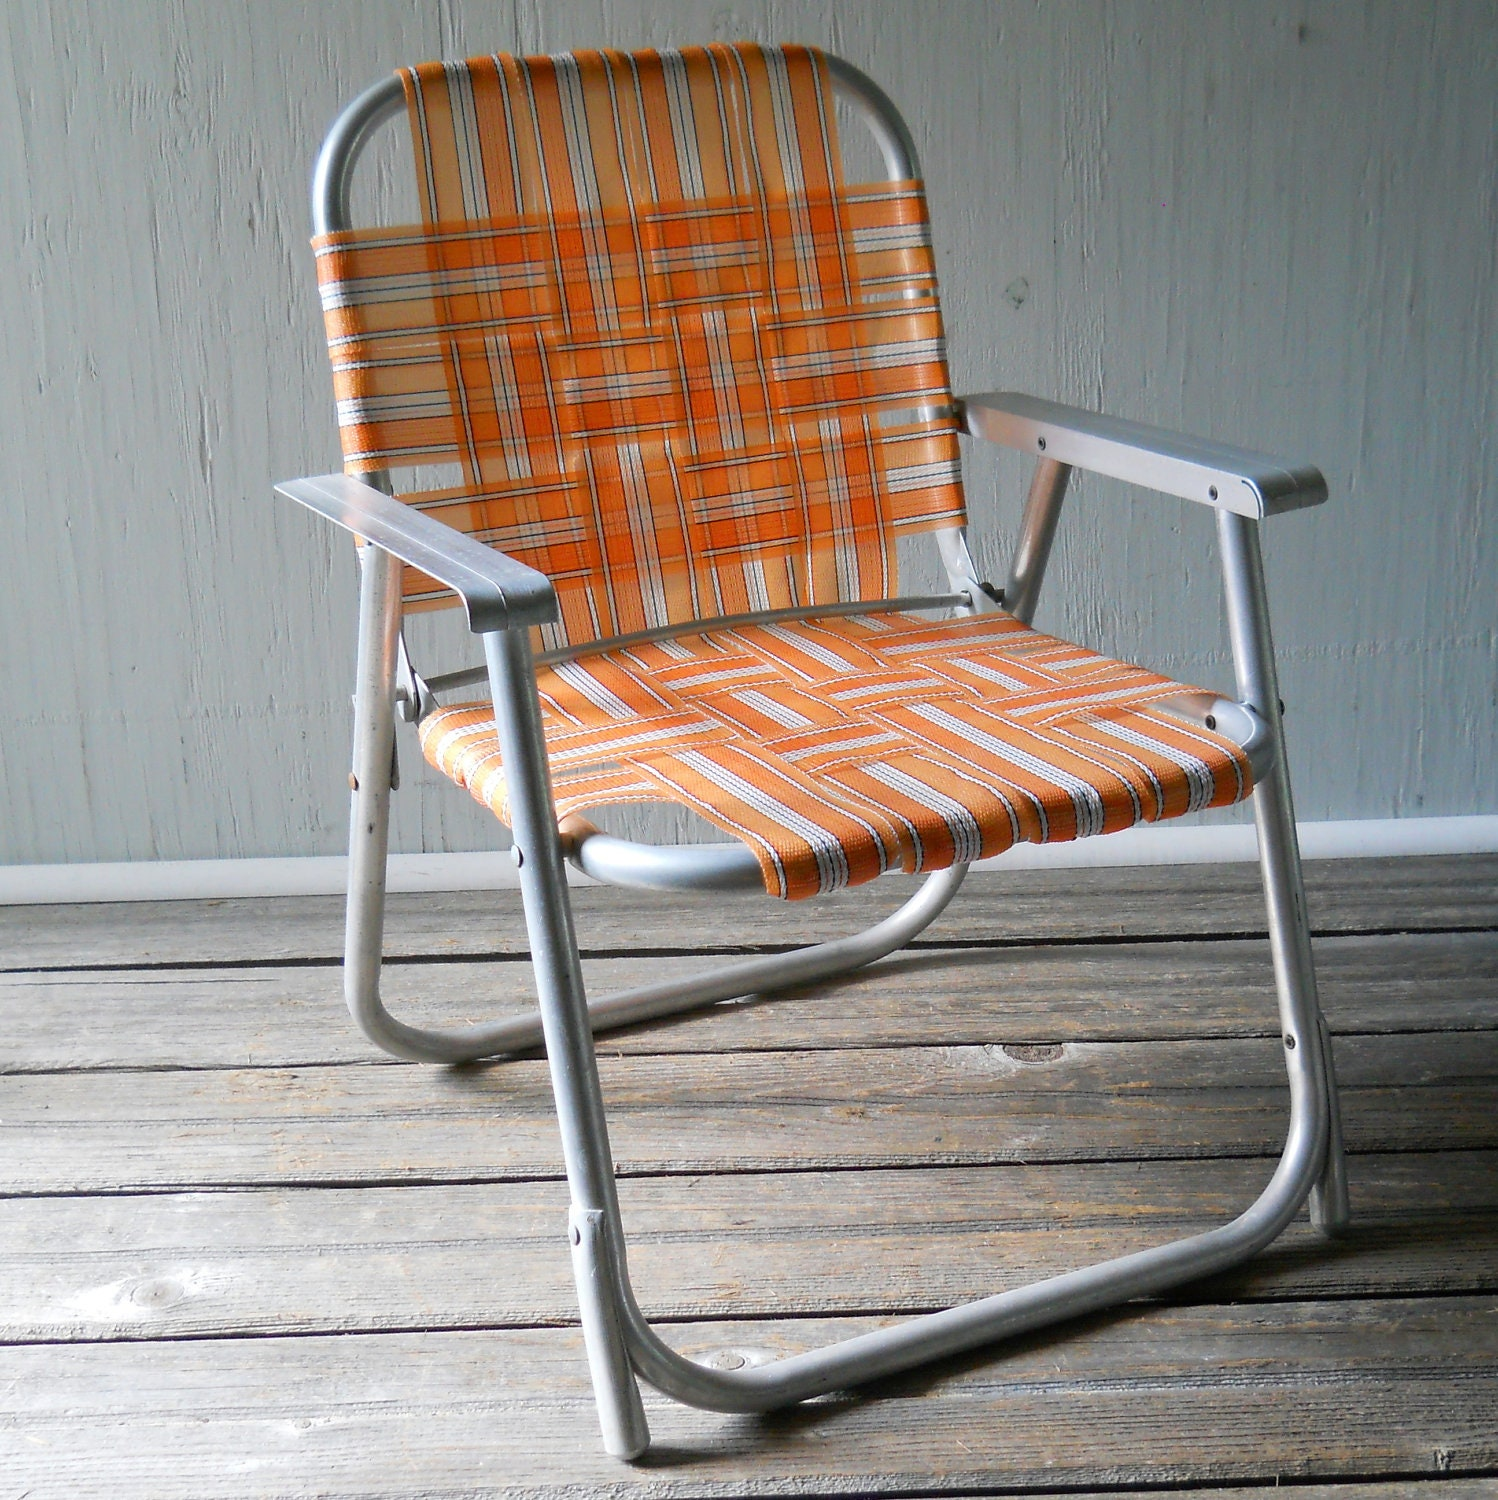 Vintage Folding Lawn Chair Child s Aluminum Folding Chair